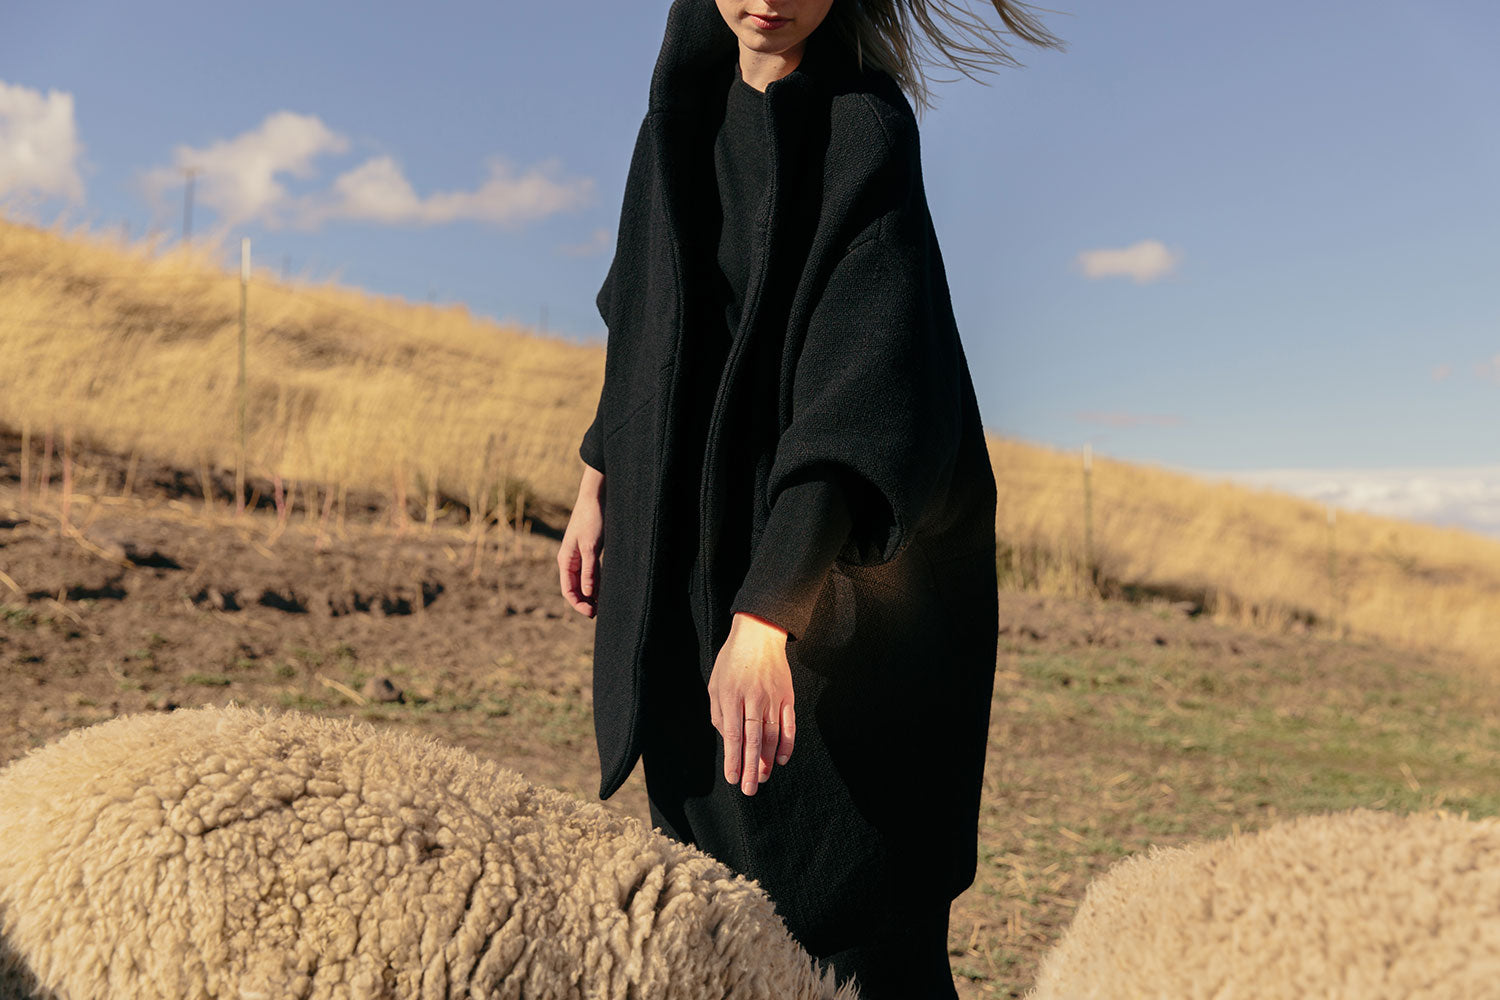 HOVER2_[a href=|/collections/cold-weather-collection/products/harper-sweater-dress-midweight-felted-wool|]Harper Sweater Dress [Black Midweight Felted Wool][/a] + [a href=|/collections/cold-weather-collection/products/cocoon-coat-heavy-basketweave-wool|]Cocoon Coat [Black Heavy Basketweave Wool][/a]